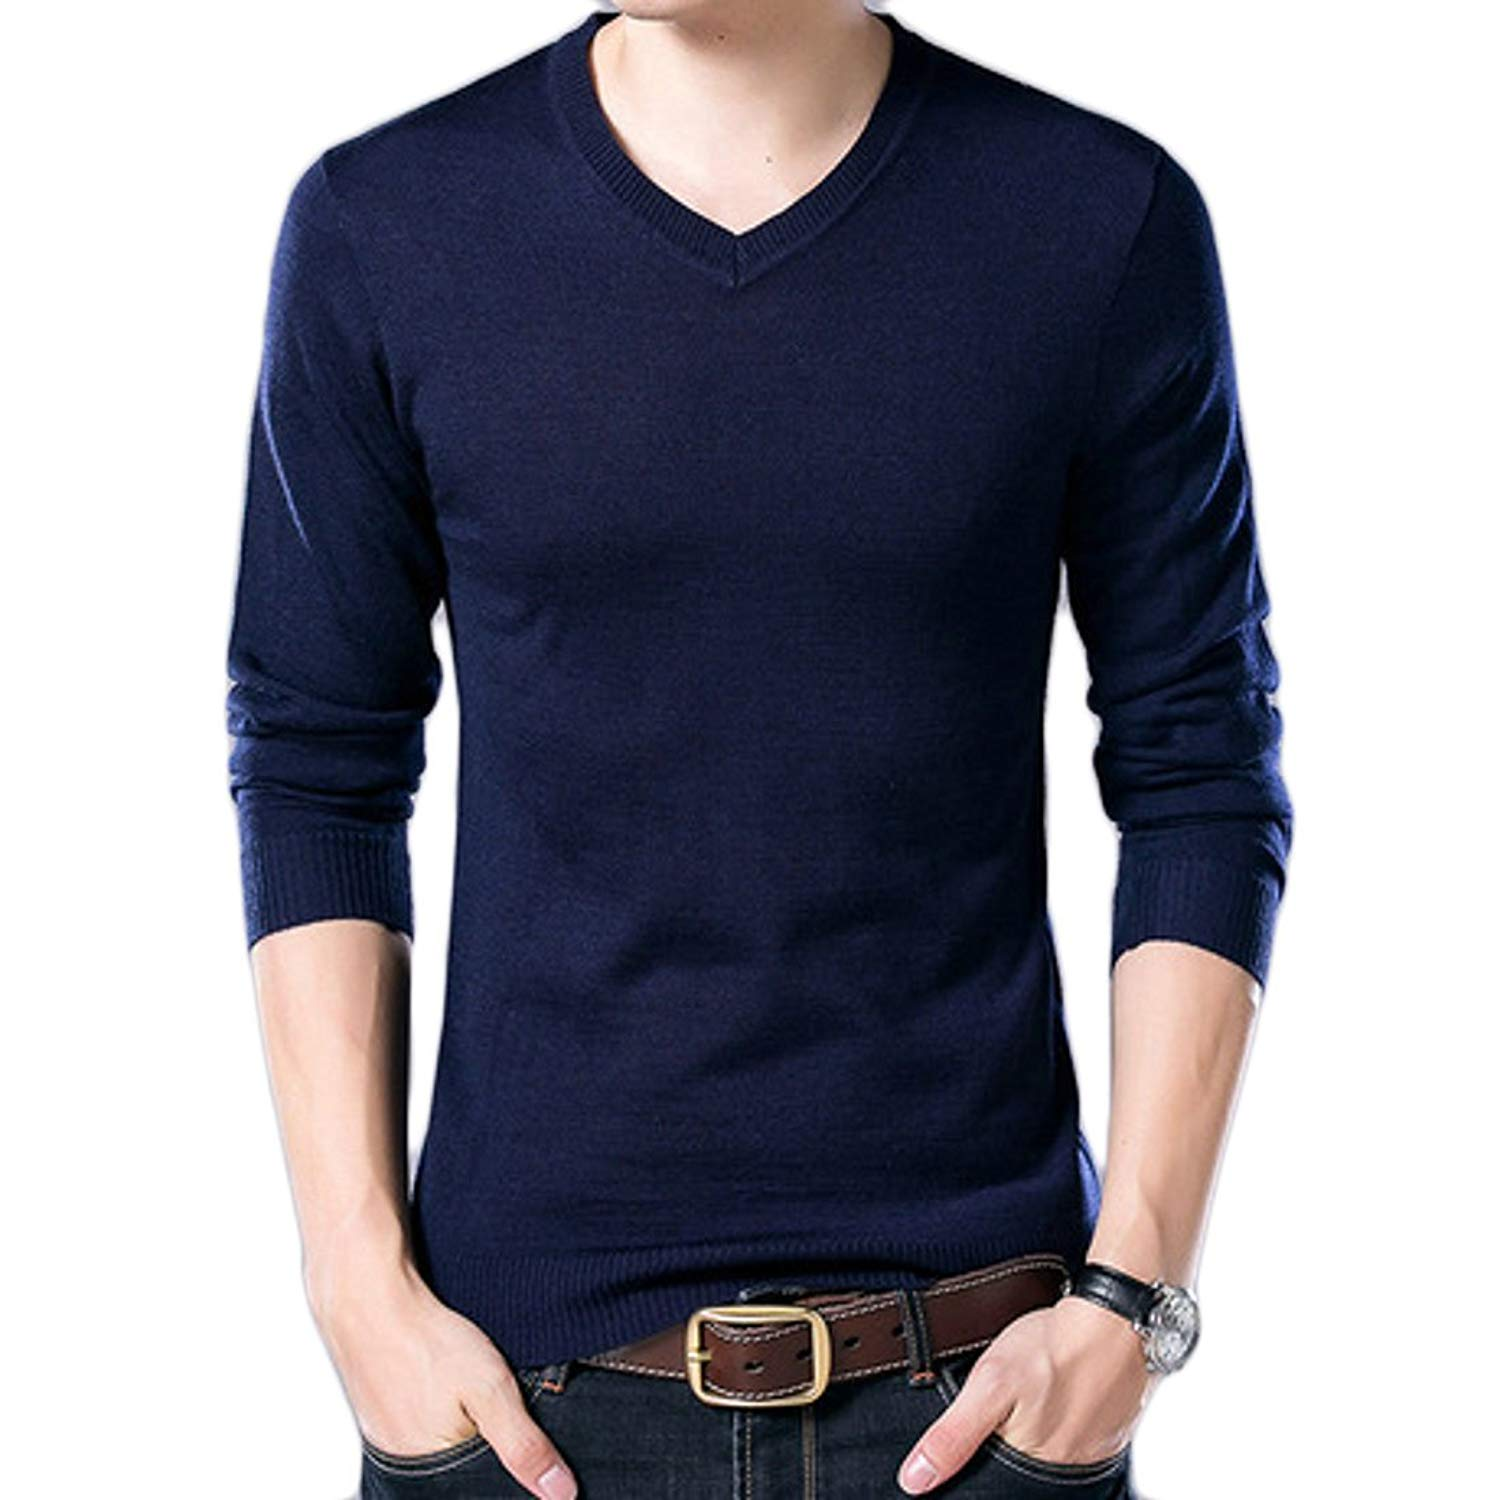 UUYUK-Men Fashion V Neck Solid Slim Fit Knitted Pullover Sweater